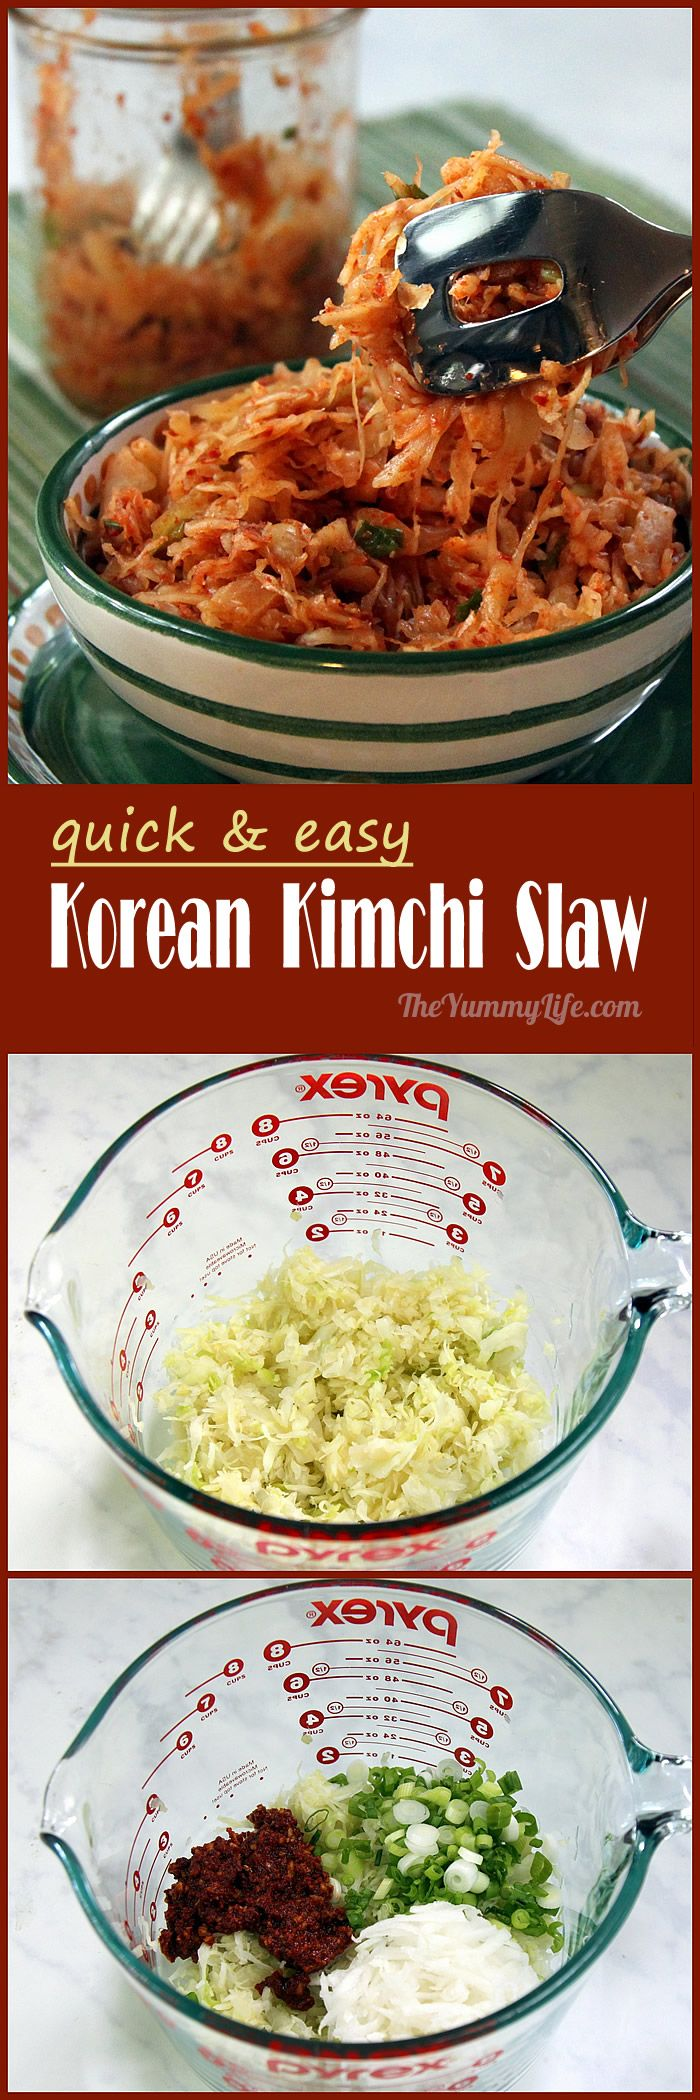 A spicy complement to Korean tacos, sandwiches, bibimbap rice bowls, or a side for any Korean meal; uses pre-shedded cabbage slaw for convenience. From TheYummyLife.com